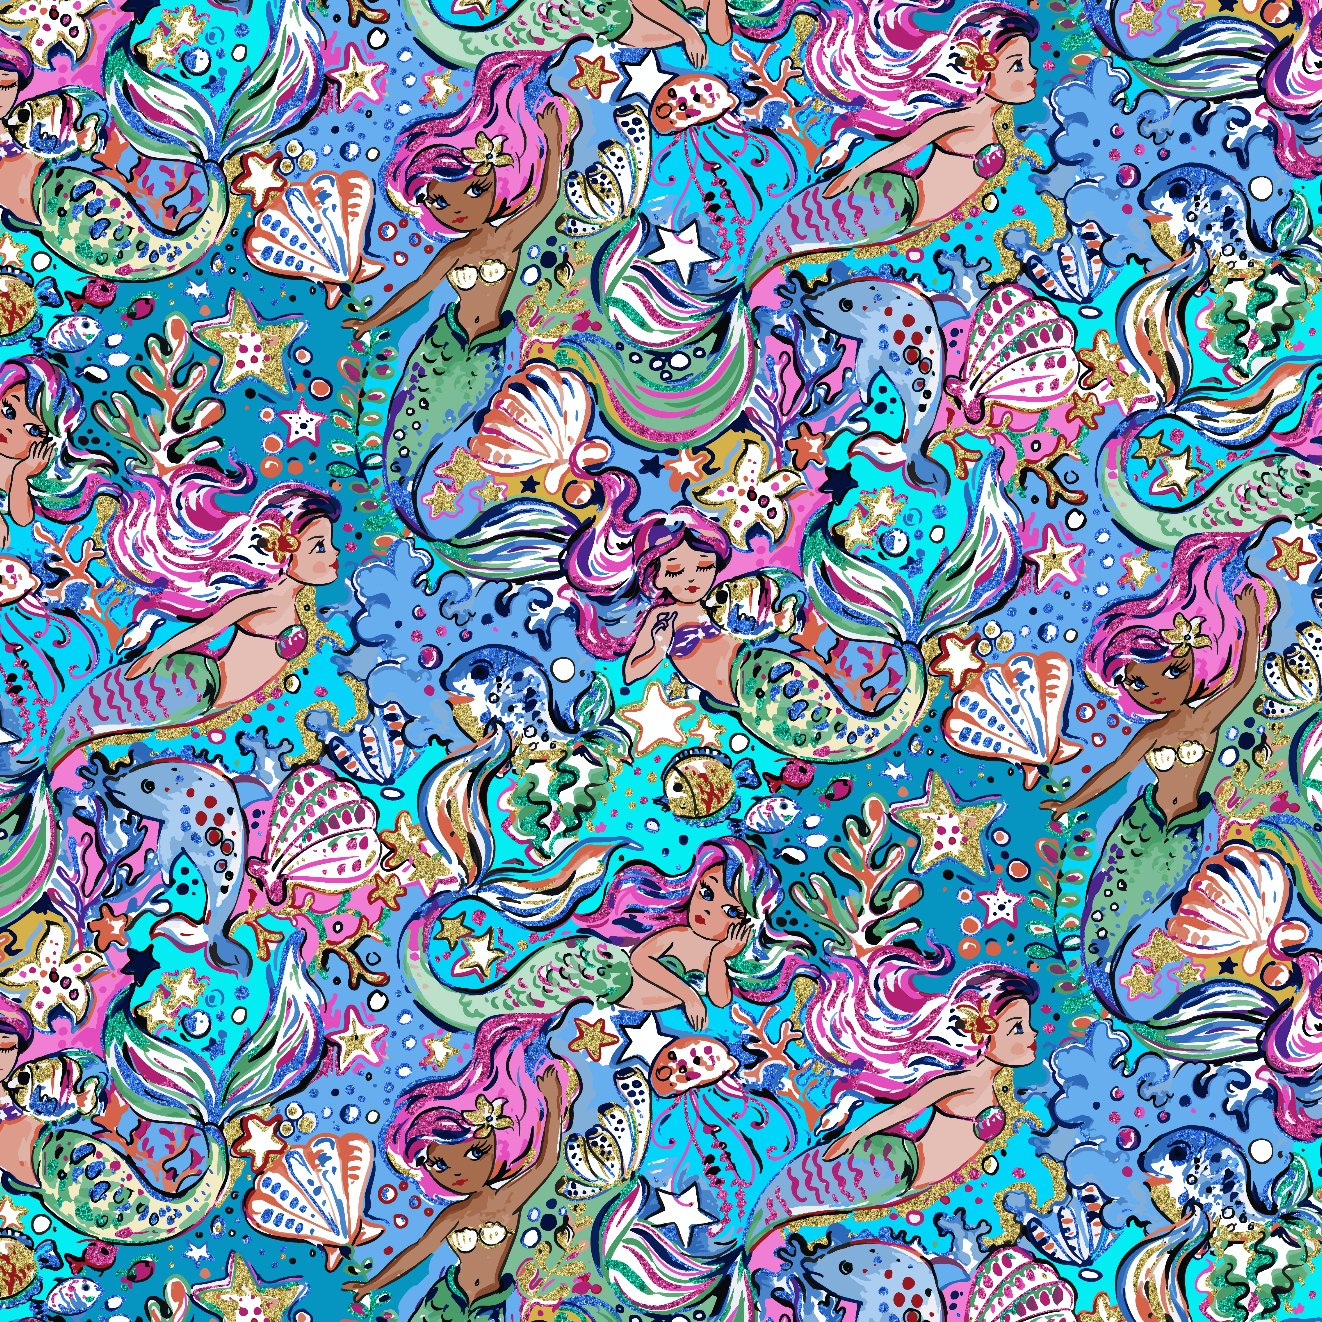 PRE ORDER - Enchanted Land Mermaids - Digital Fabric Print